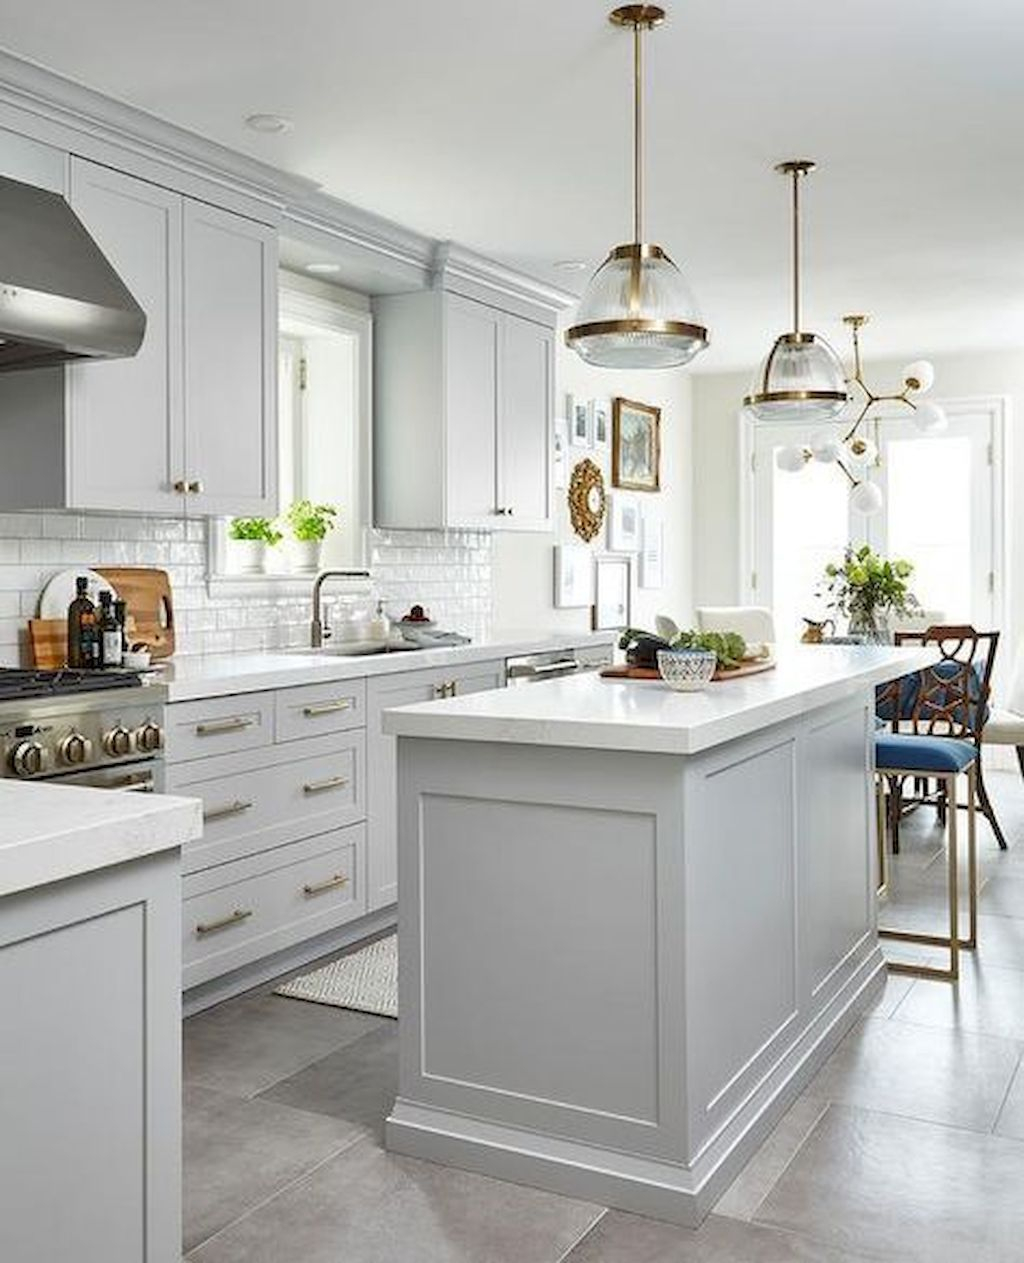 Relaxing Kitchen Cabinet Colour Combinations Ideas To Try 27